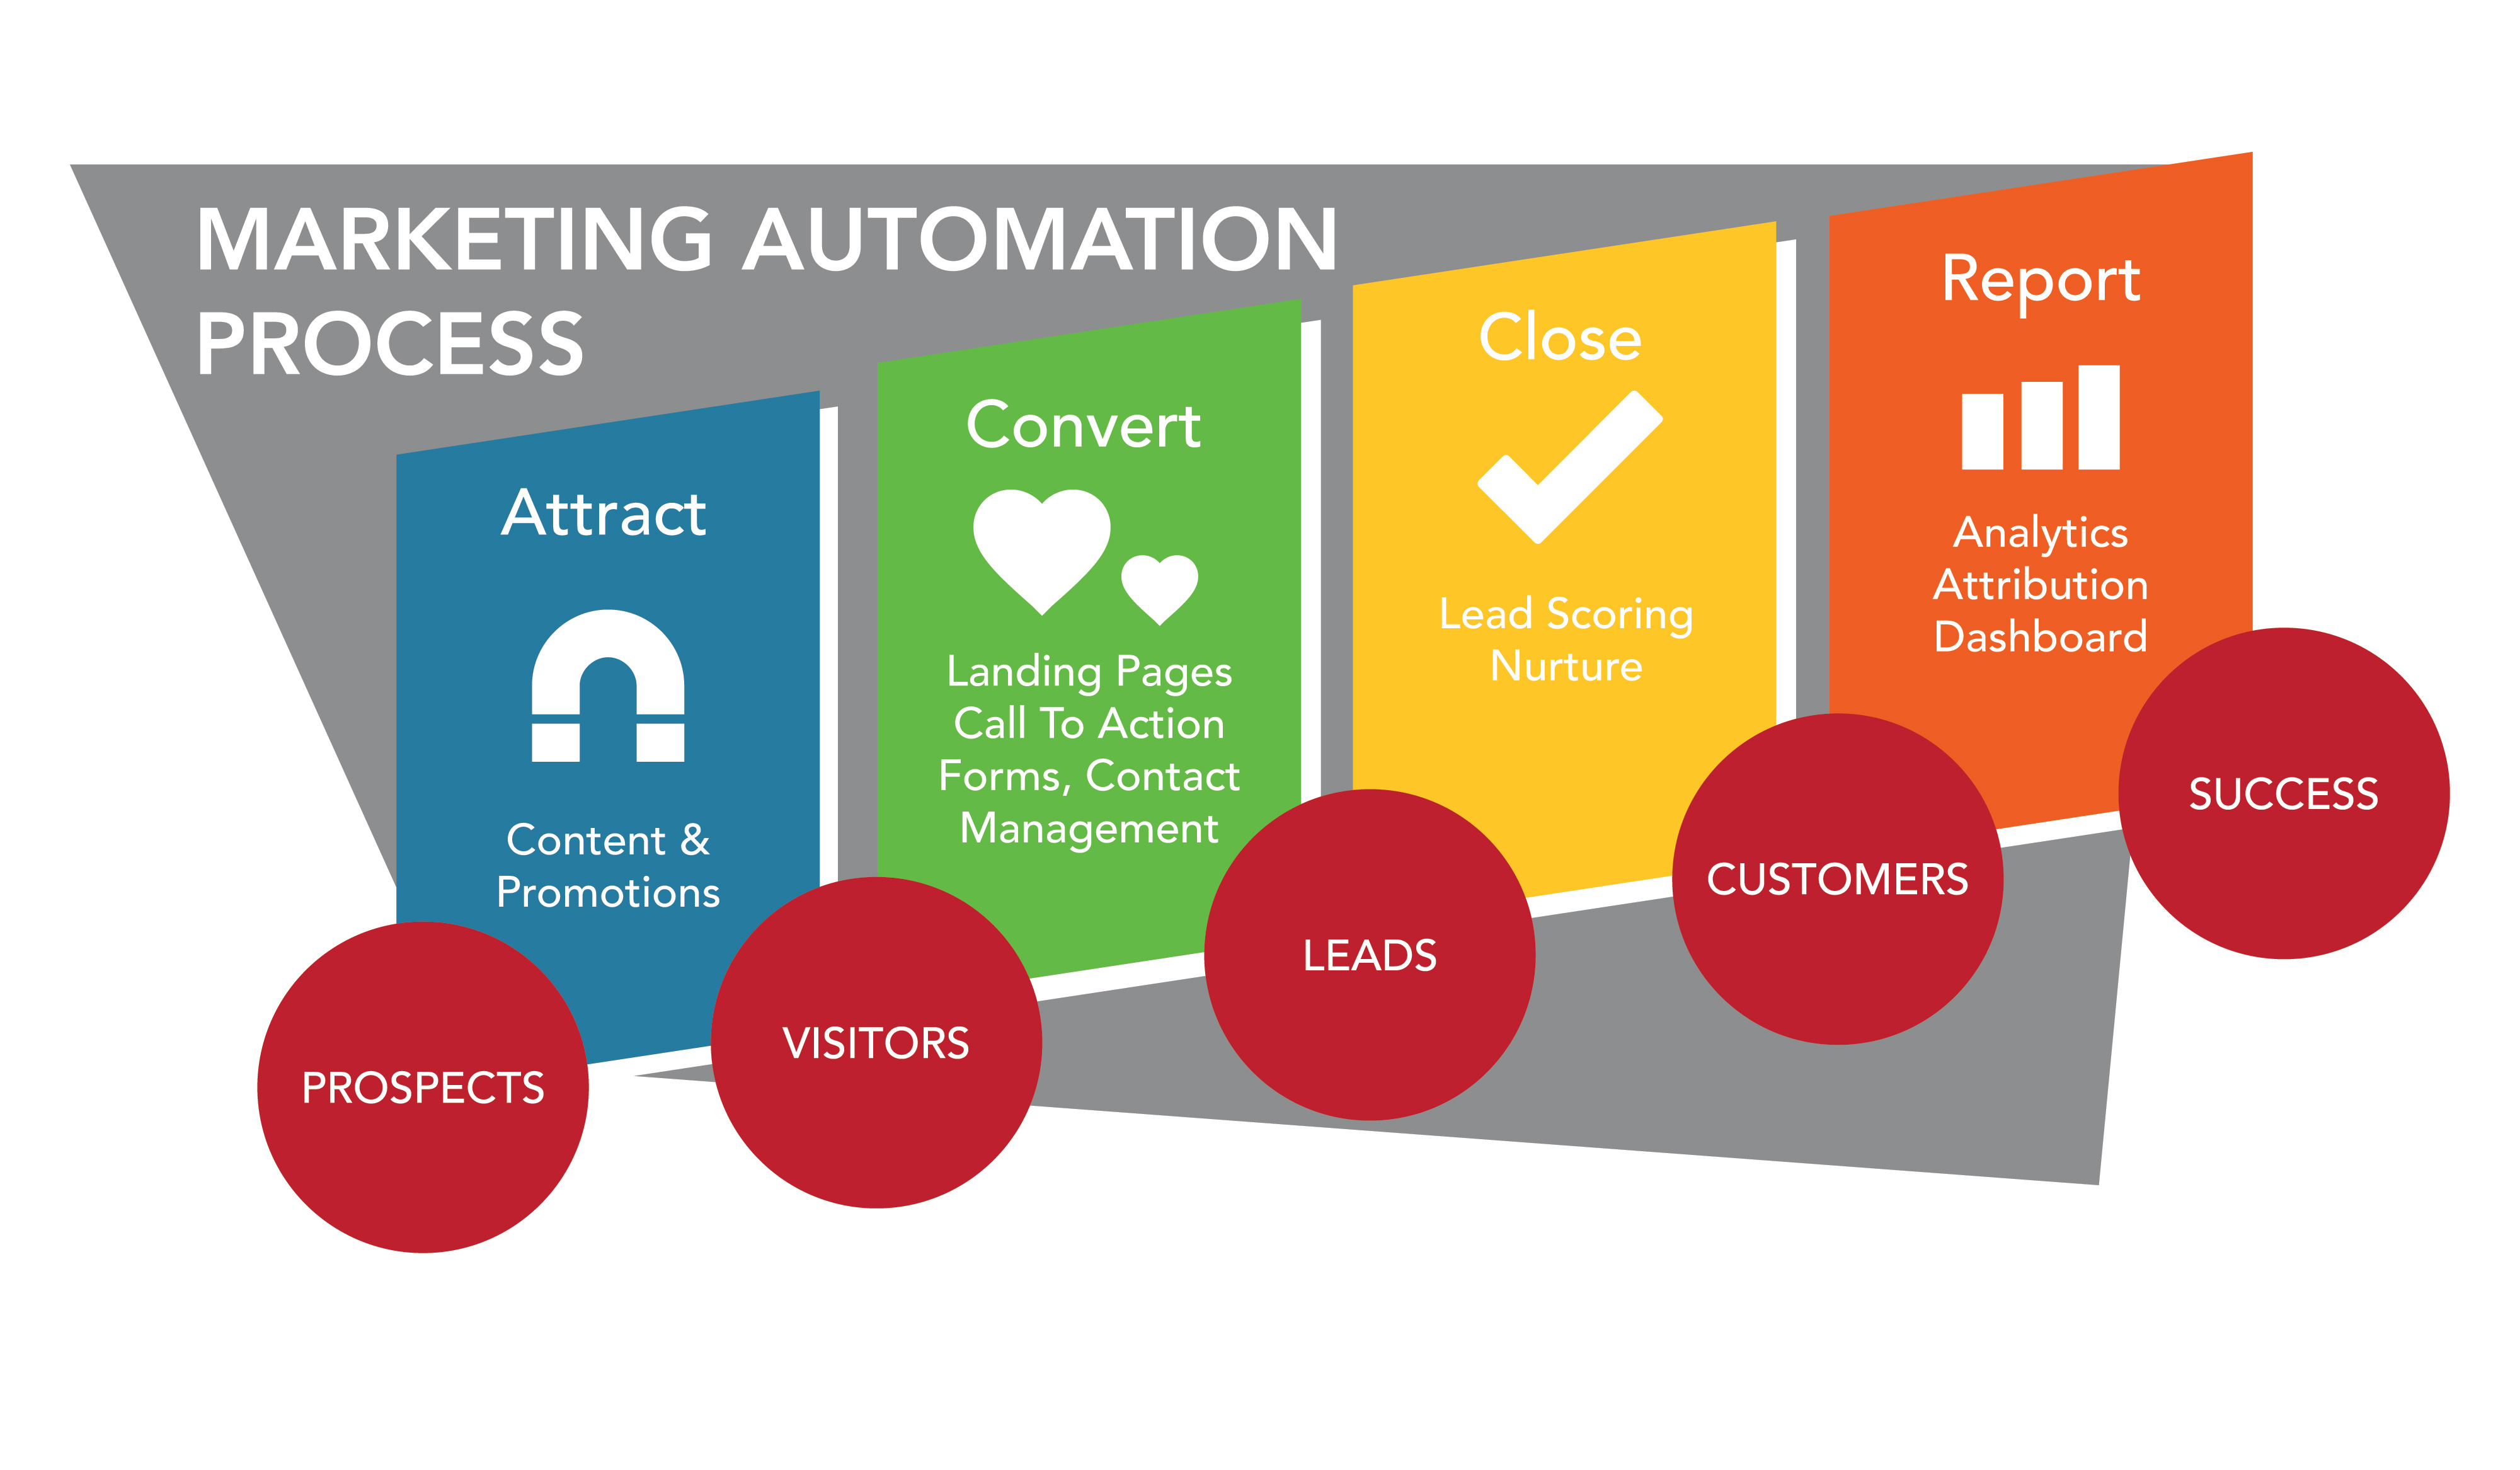 MarketingAutomationProcess